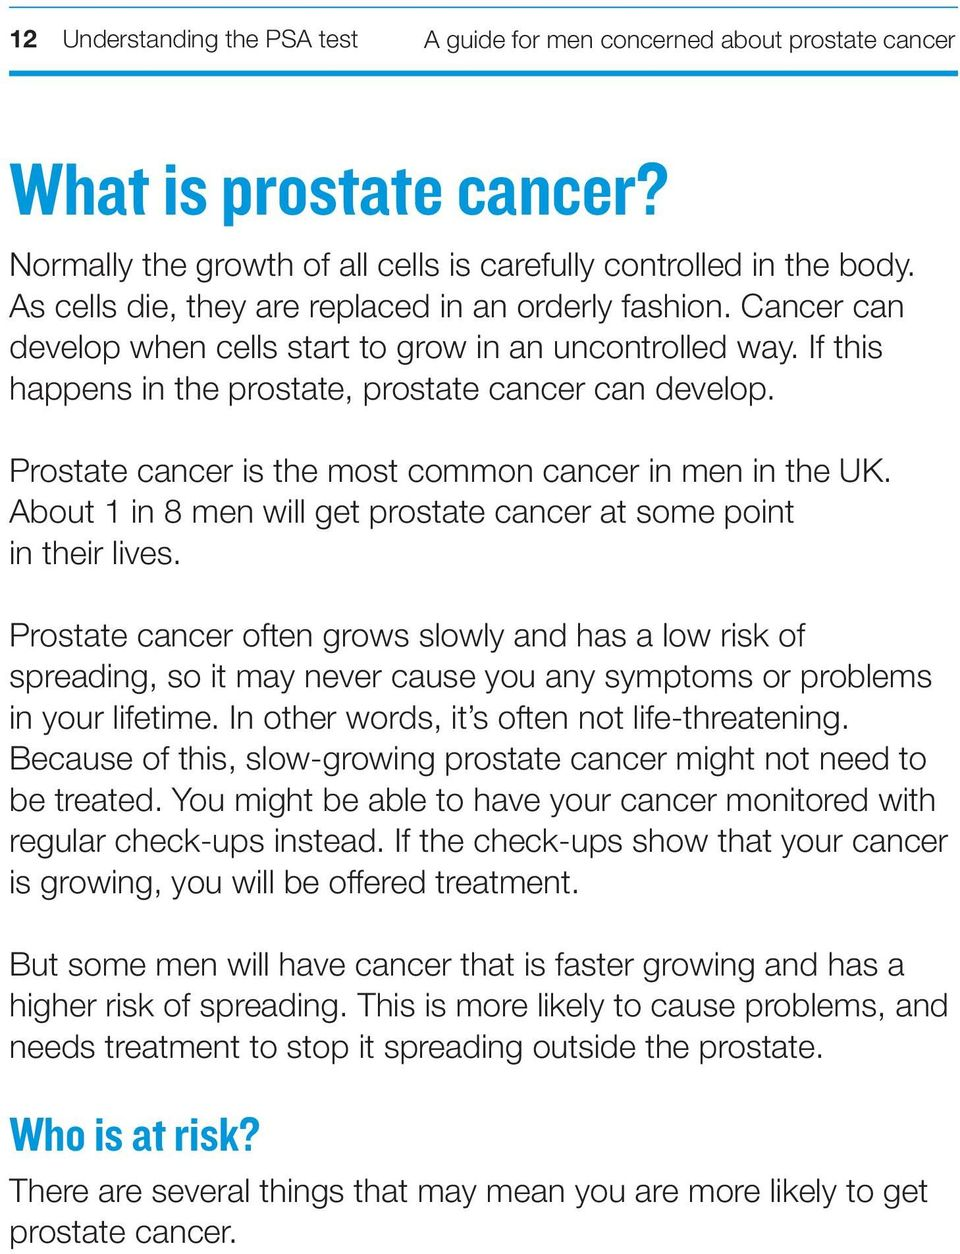 Prostate cancer is the most common cancer in men in the UK. About 1 in 8 men will get prostate cancer at some point in their lives.